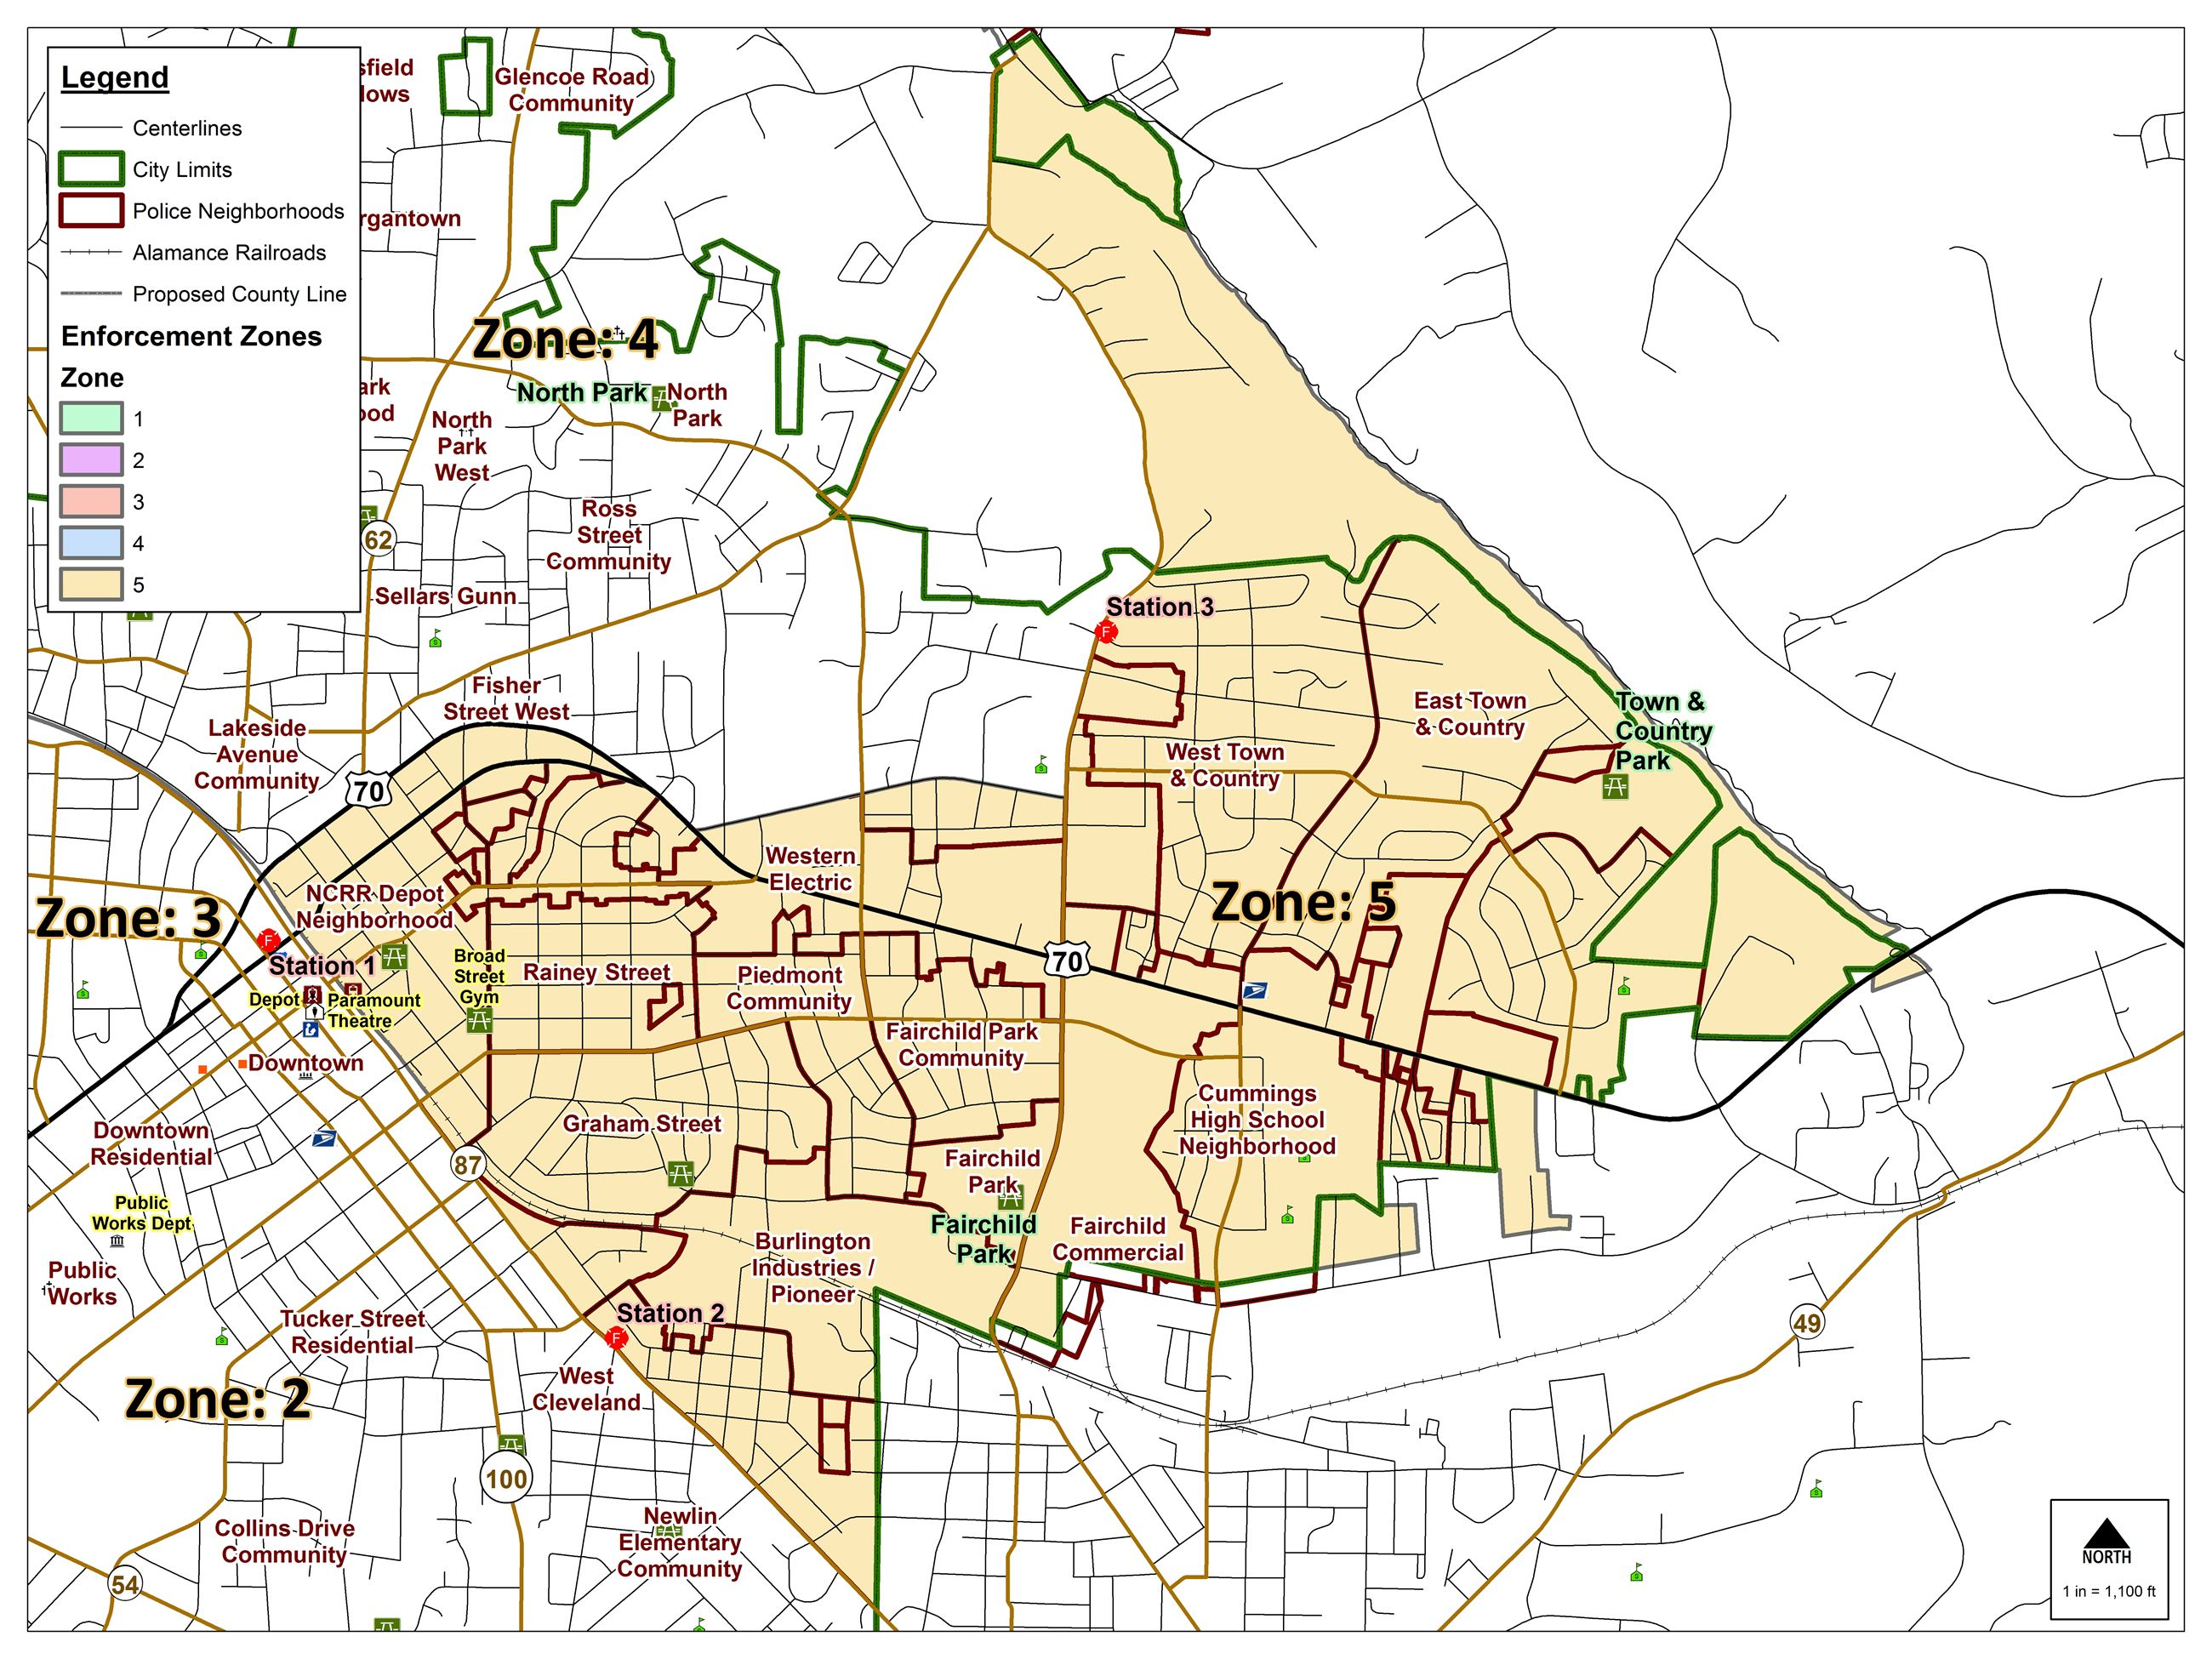 Zone 5 - Enforcement Zones Map